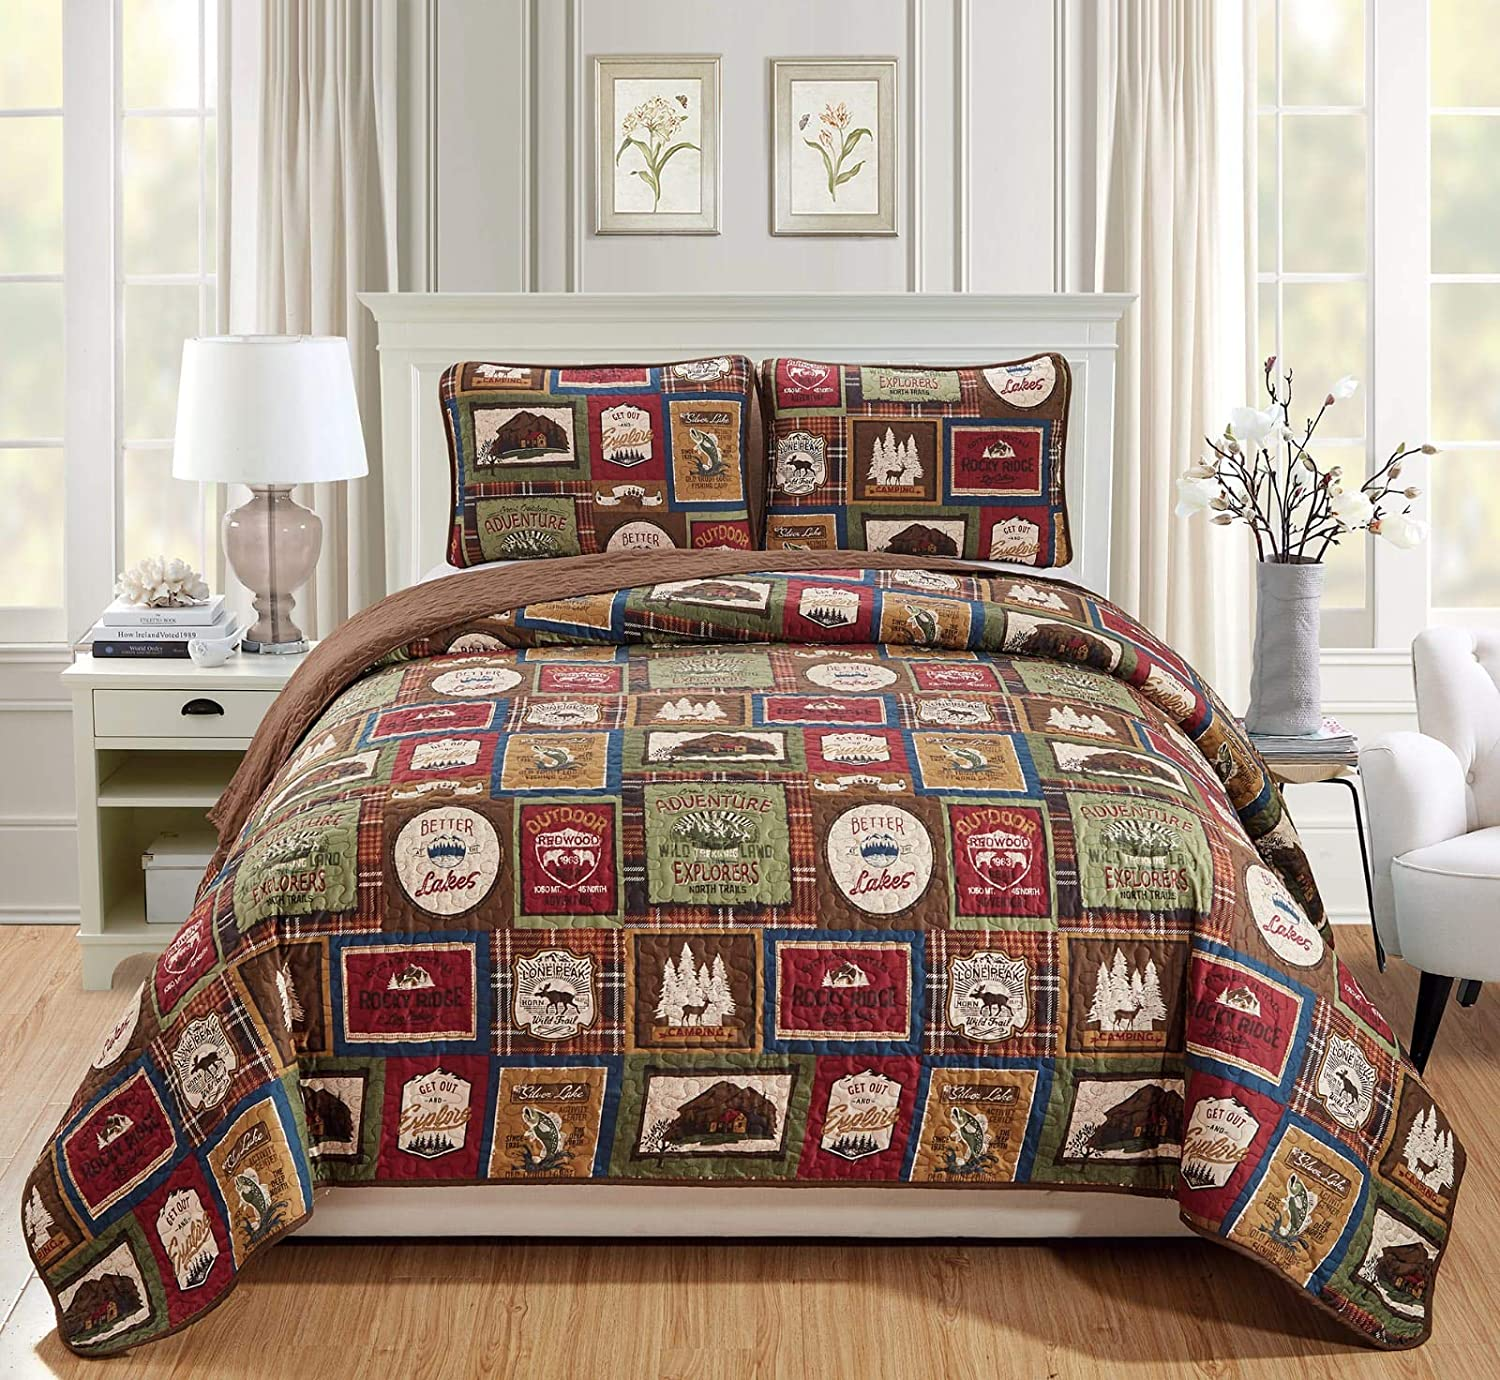 Lakehouse Quilt Bedding Set with Plaid Patterns and Outdoor Destination Signs Quilted Bedspread (Lodge) (King - Cal-King)